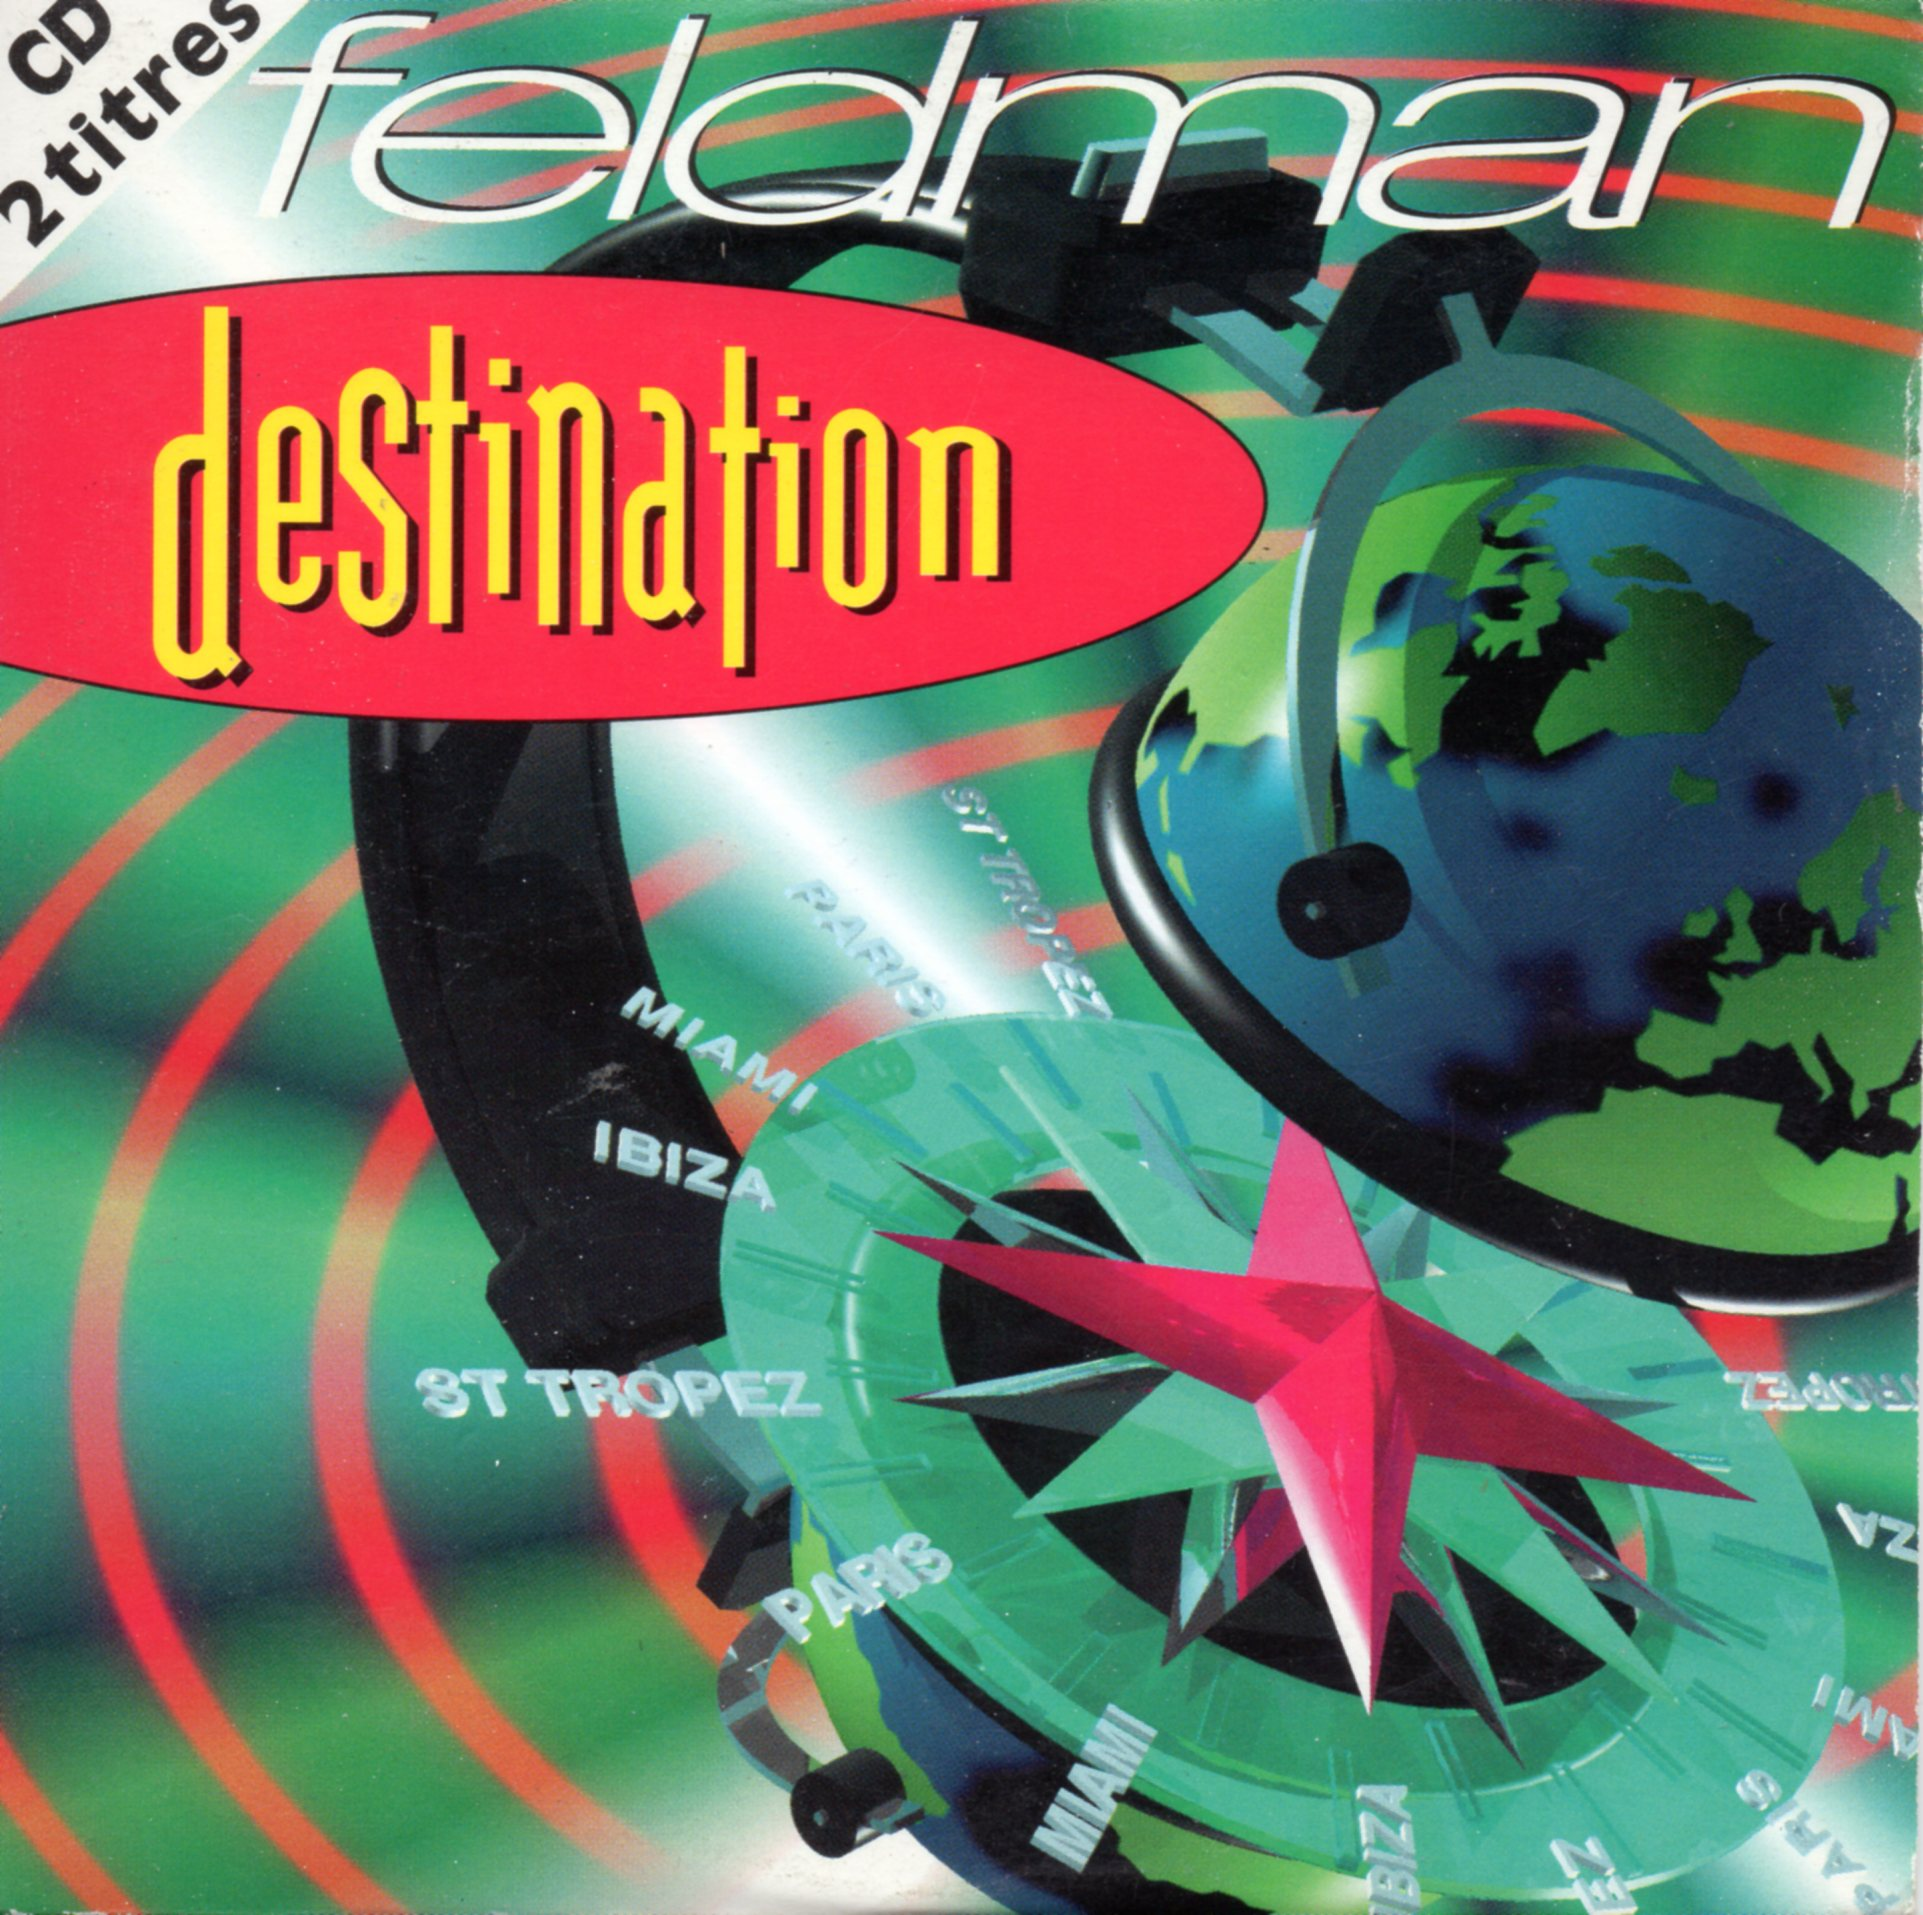 FRANÇOIS FELDMAN - Destination 2-Track CARD SLEEVE - CD single